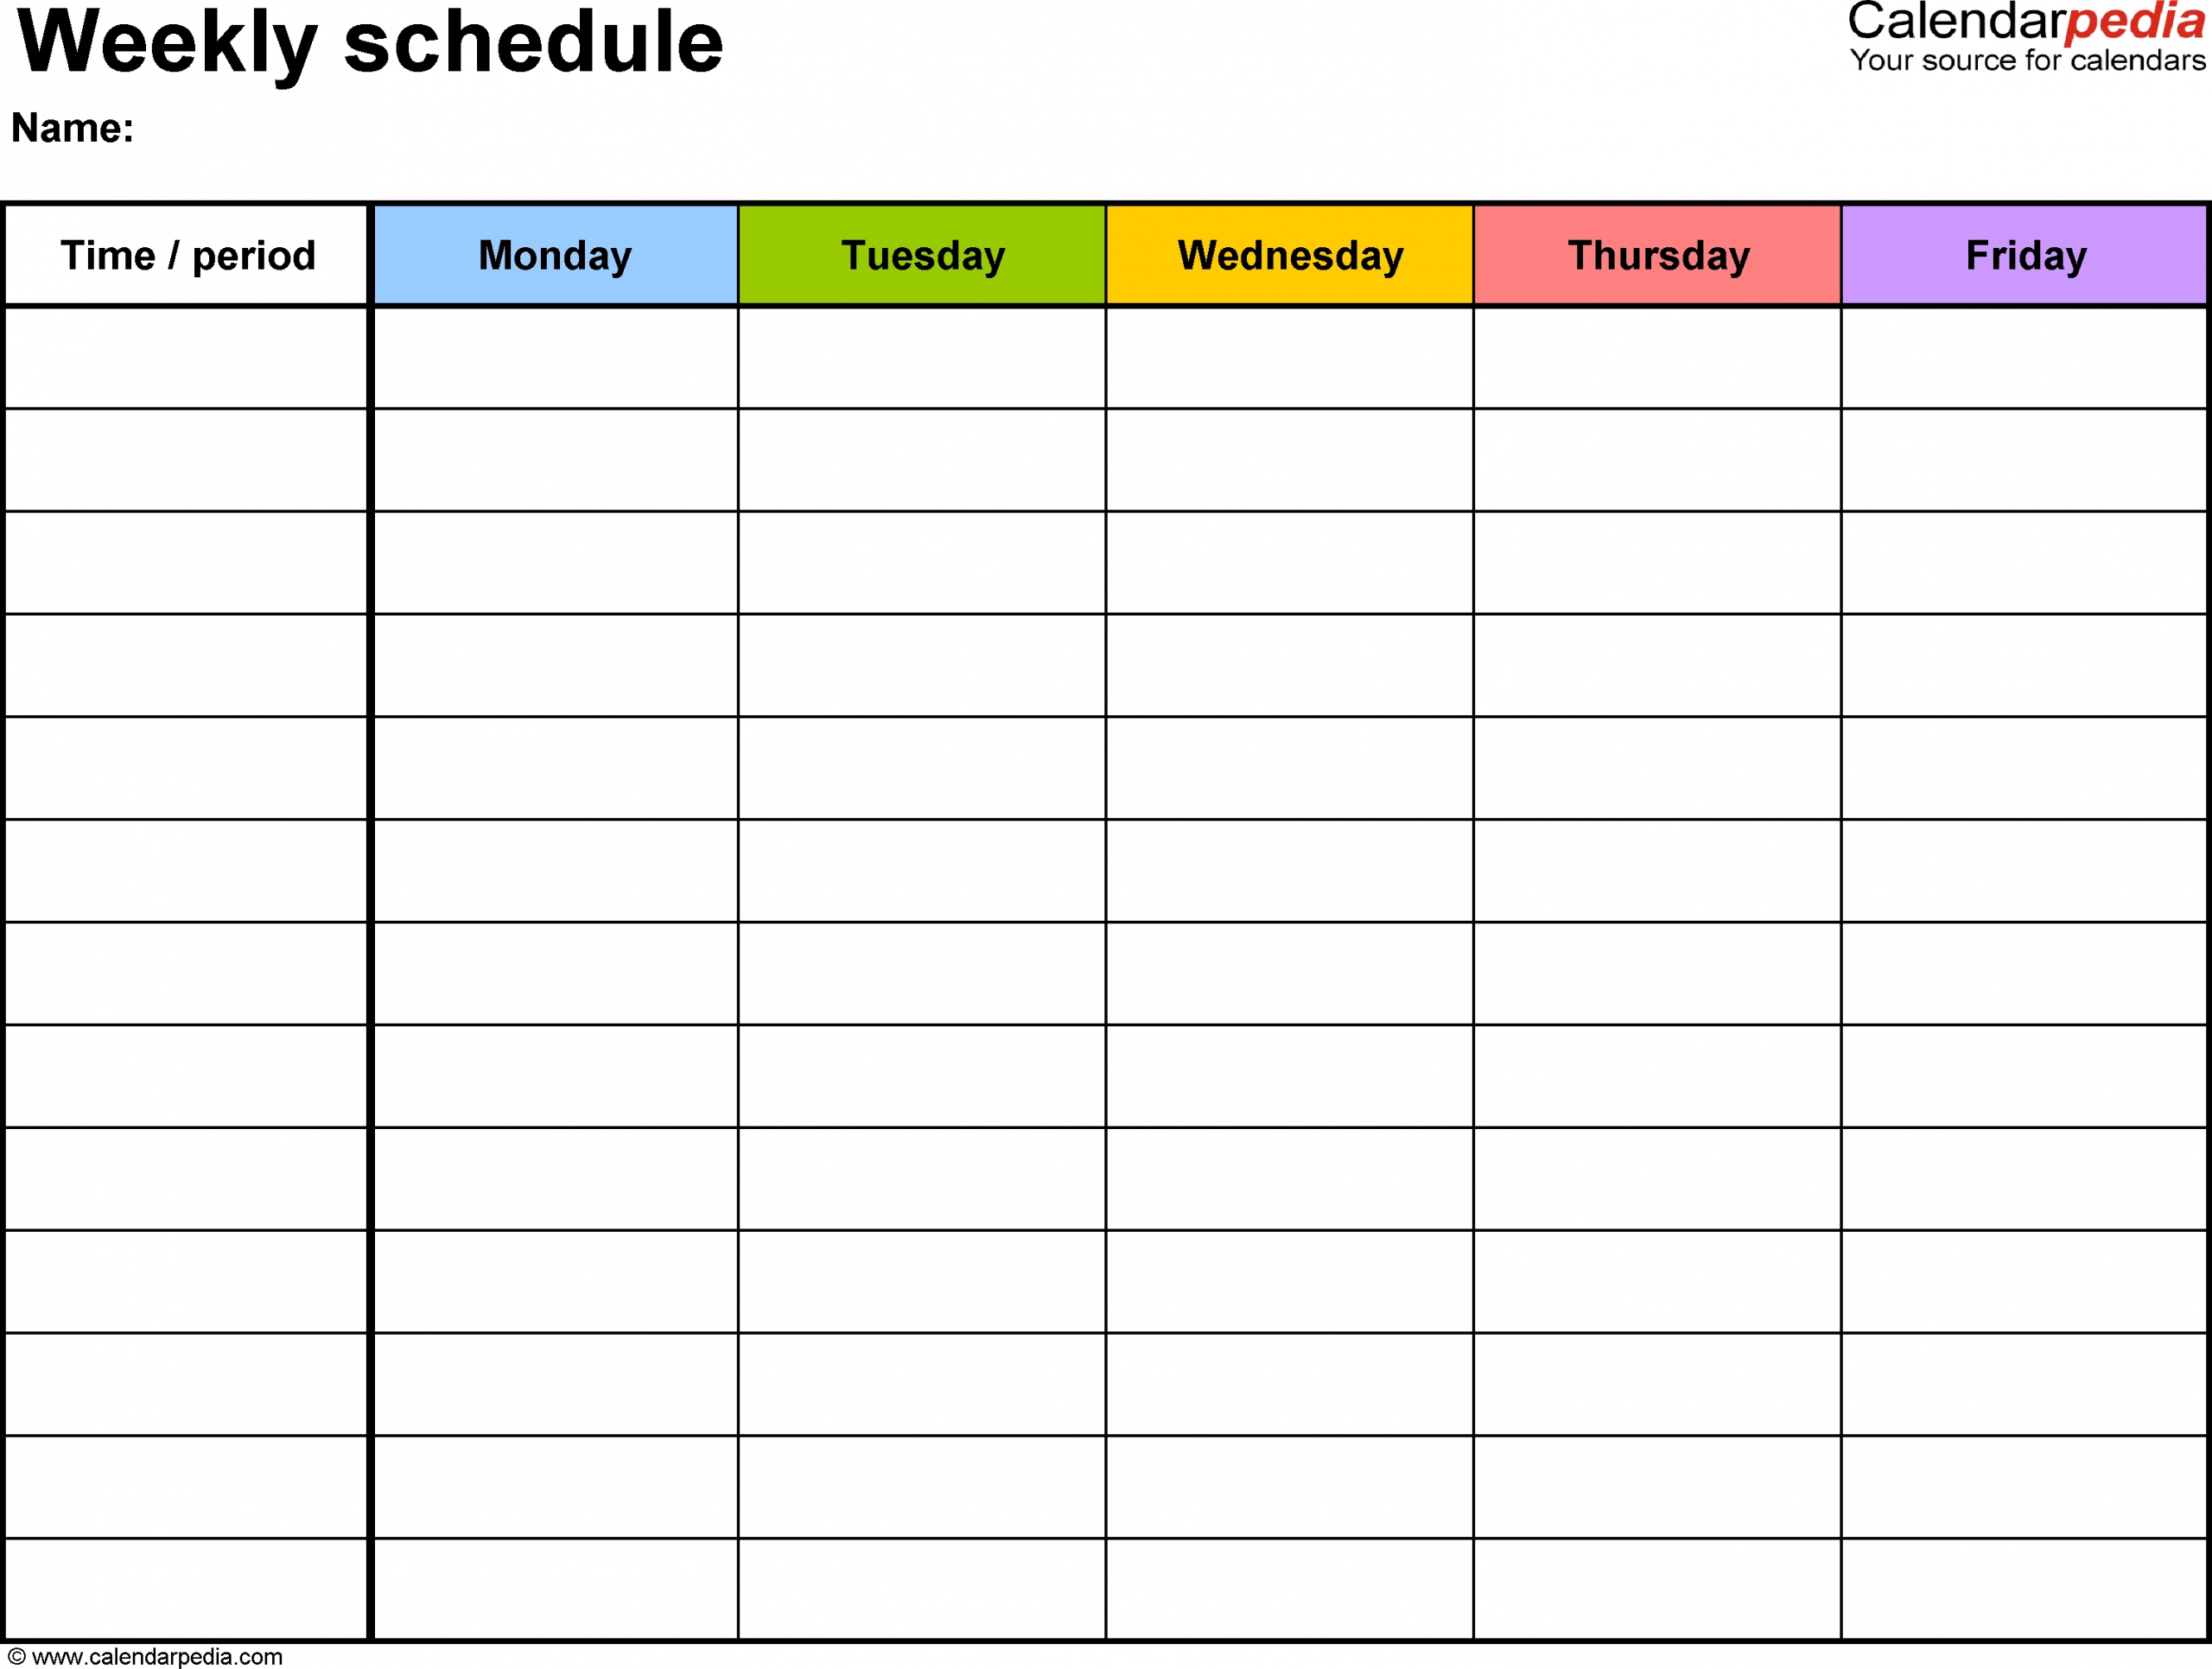 Monday To Friday Planner Templates 2020 | Calendar Free Printable Weekly Schedule Monday-Fridays